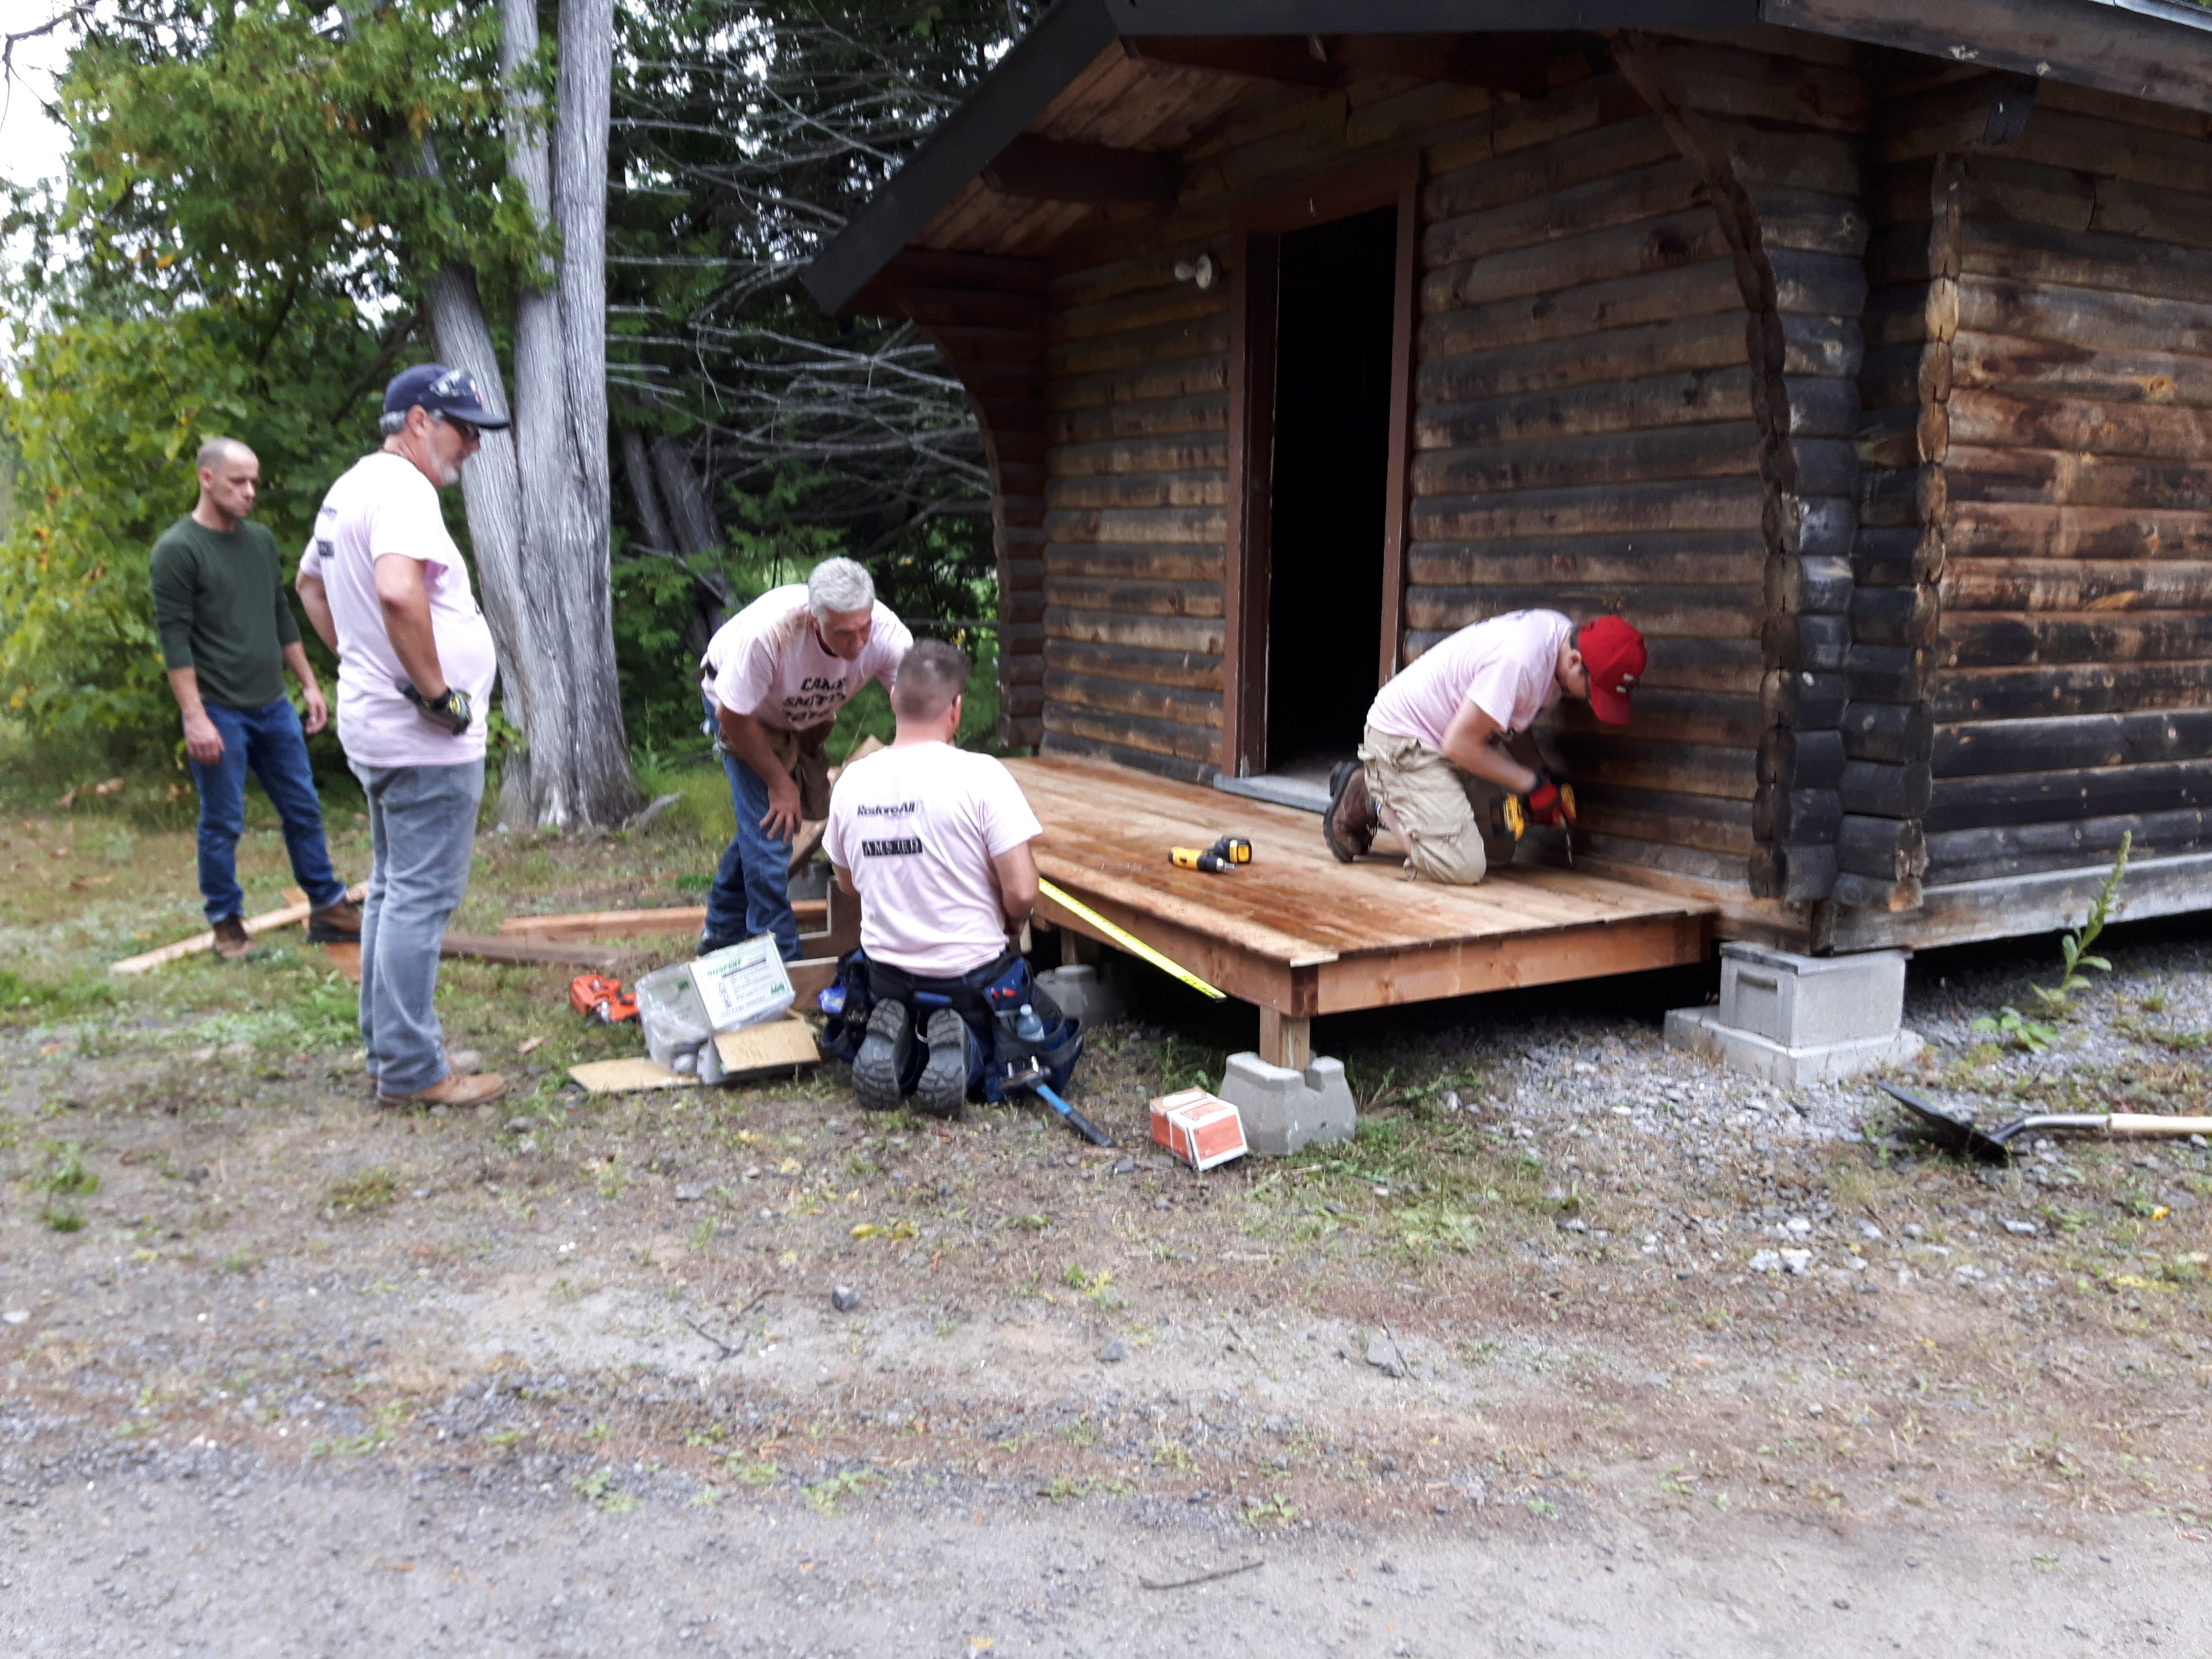 Photo of five people working on building a cabin